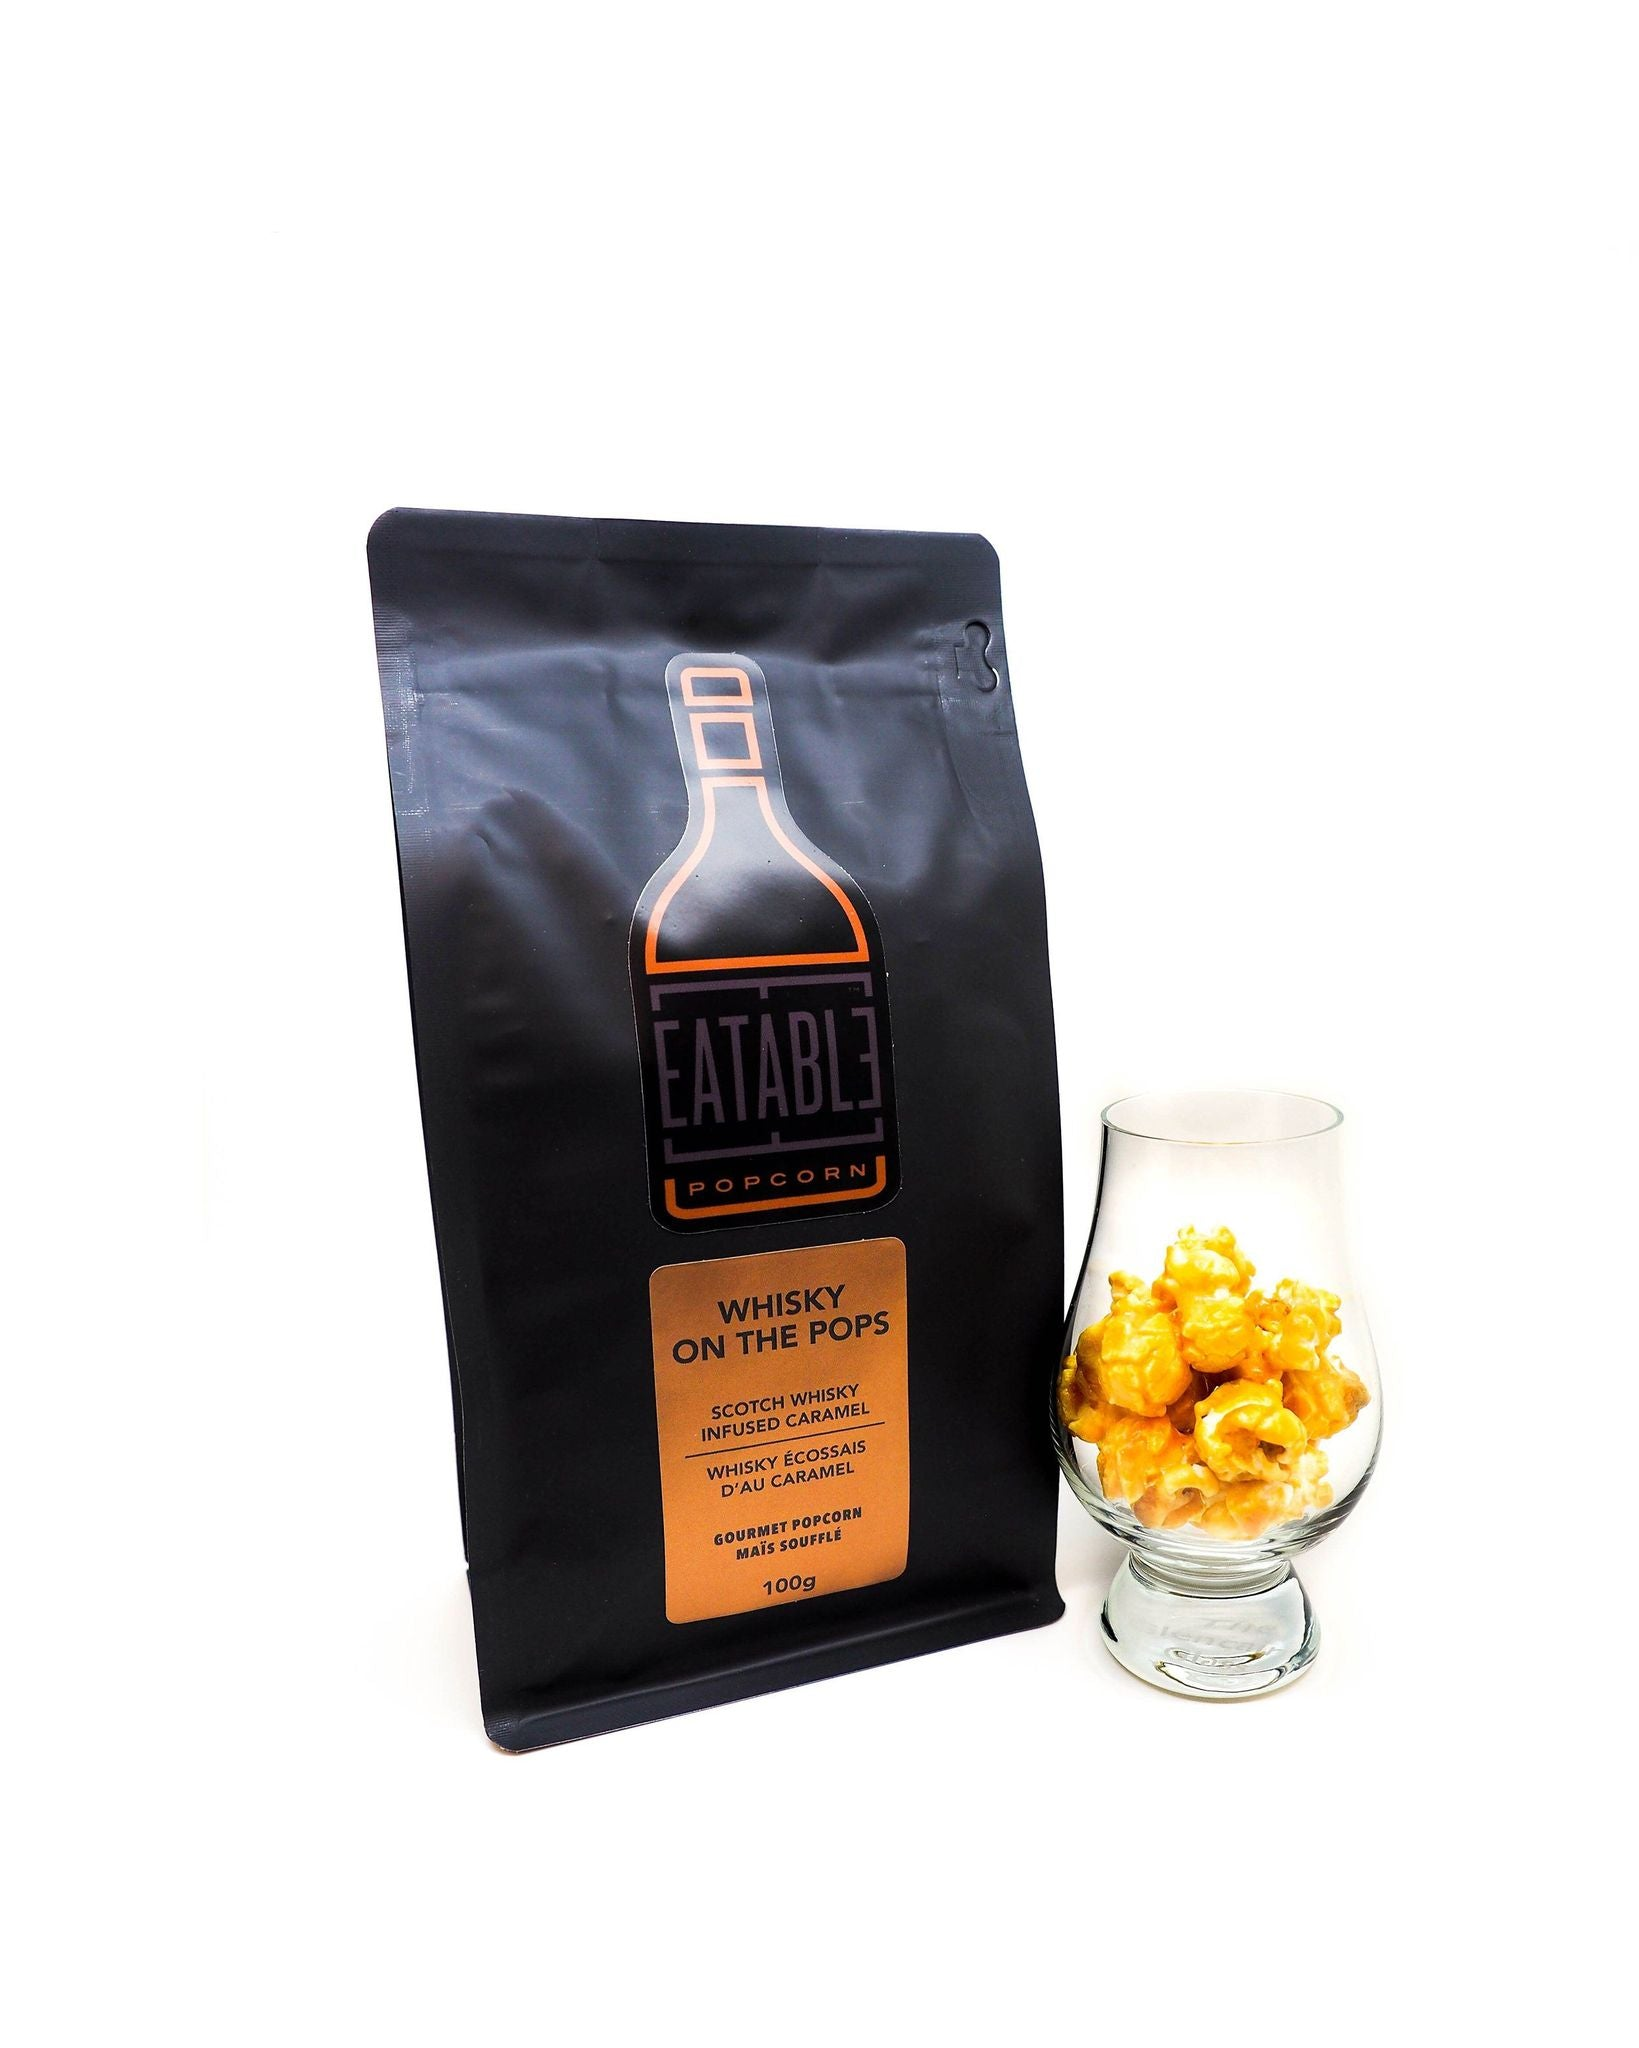 Whisky on the Pops Eatable Popcorn